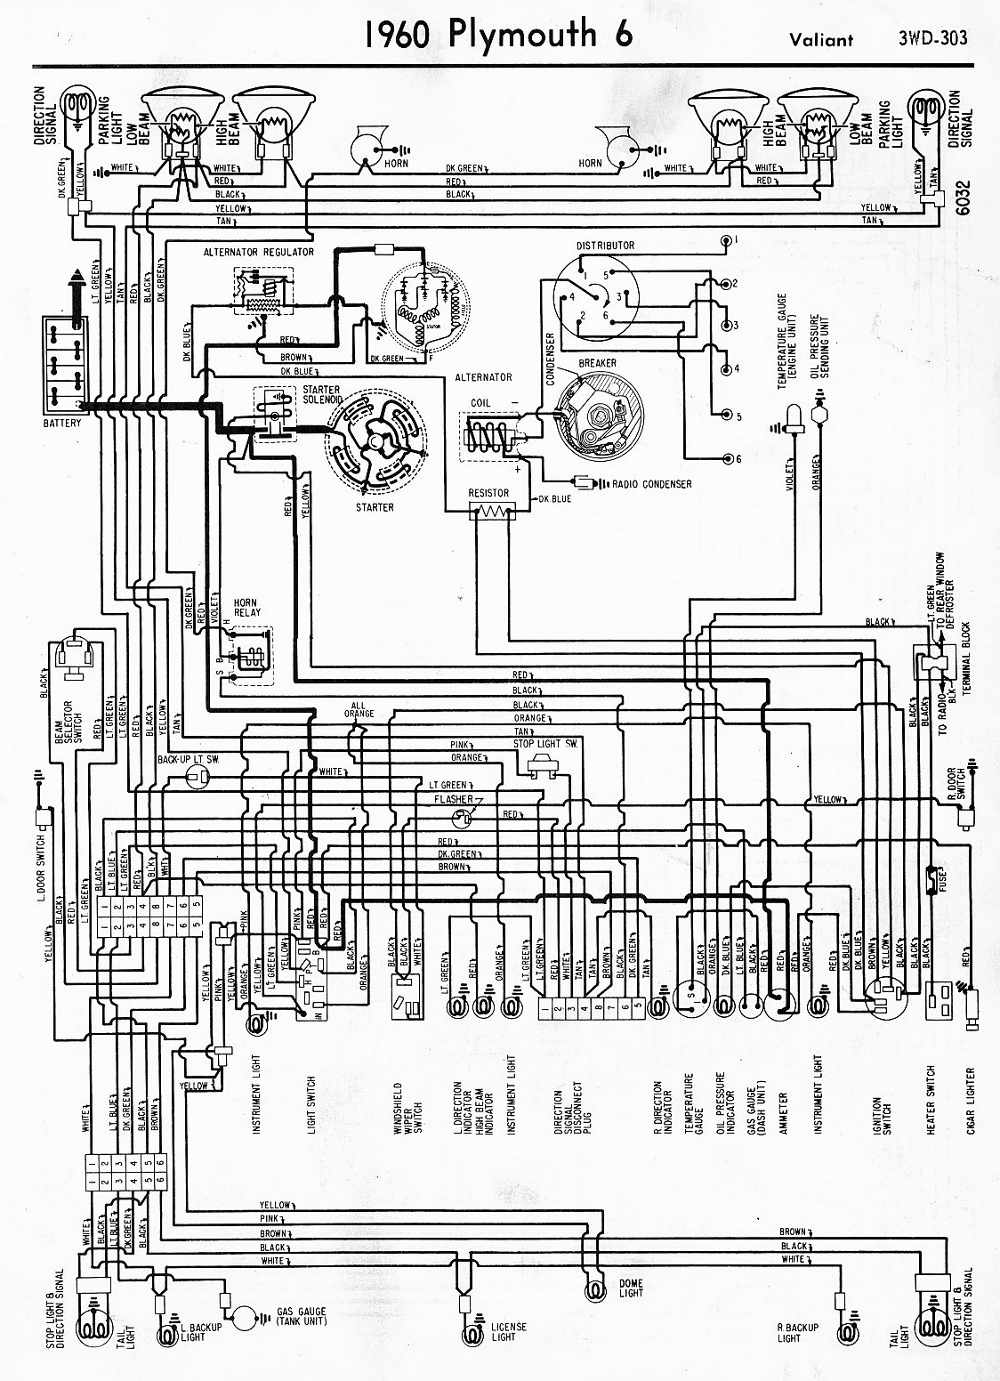 plymouth duster fuse box layout wiring diagrams u2022 rh laurafinlay co uk 74 Plymouth Satellite 4 Door 68 Plymouth Satellite